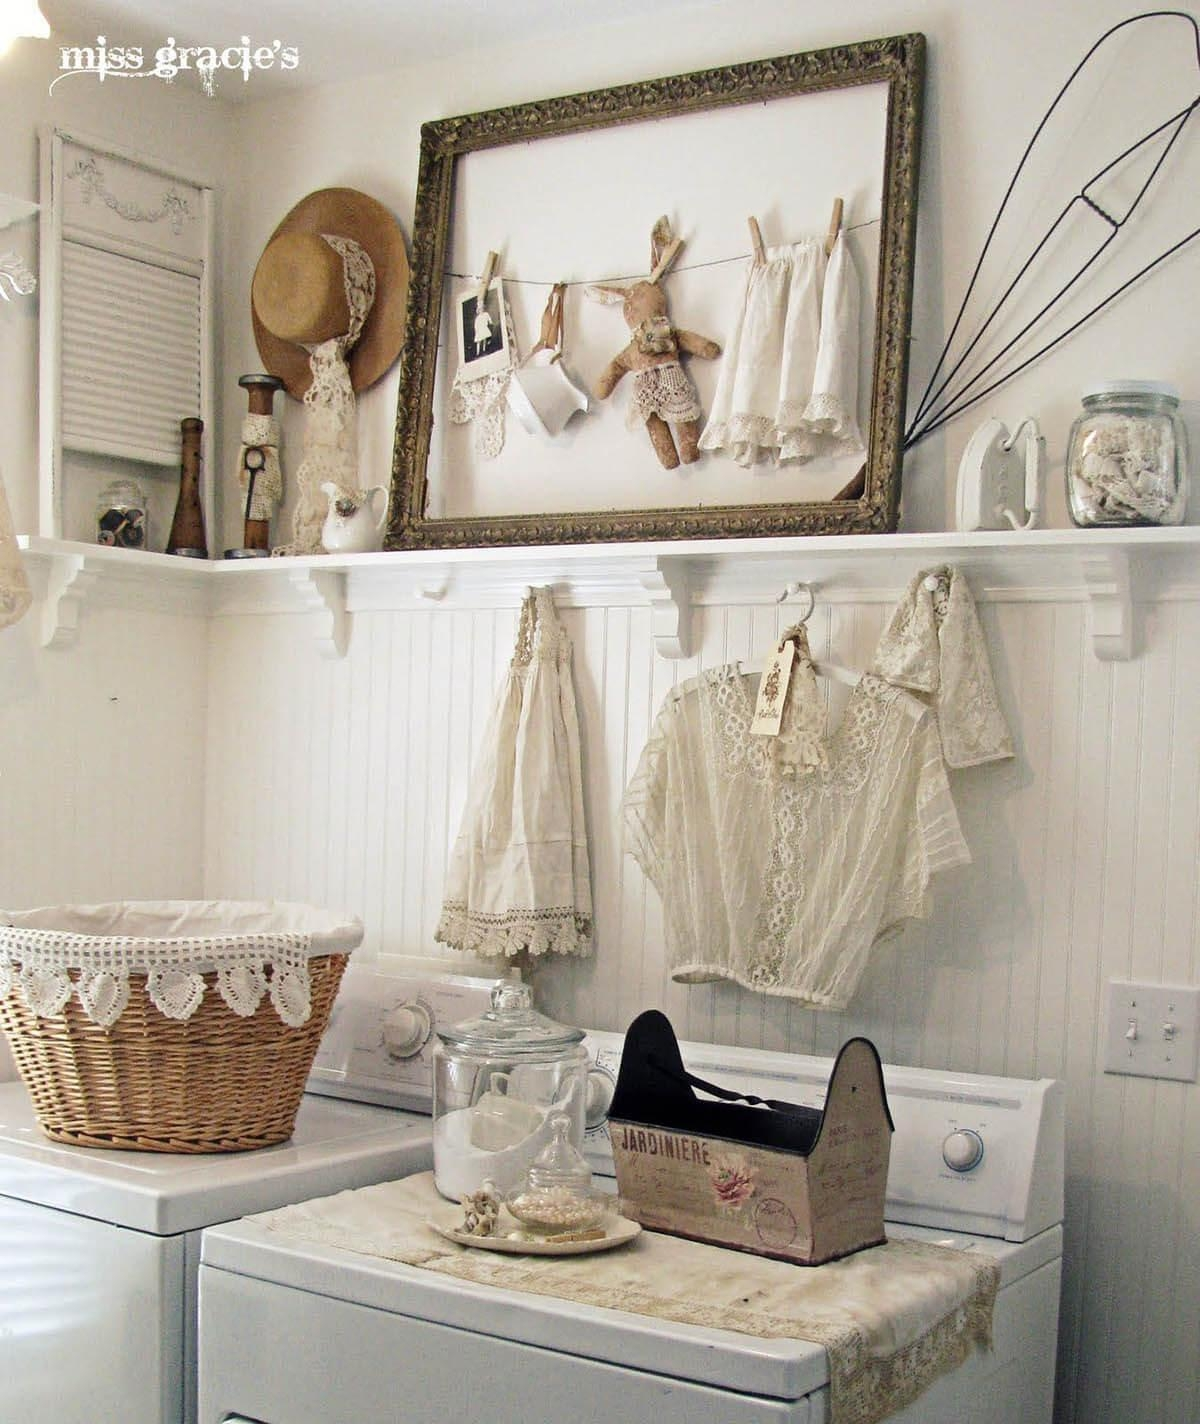 25 Best Vintage Laundry Room Decor Ideas And Designs For 2017 Throughout Laundry Room Wall Art Decors (View 11 of 20)